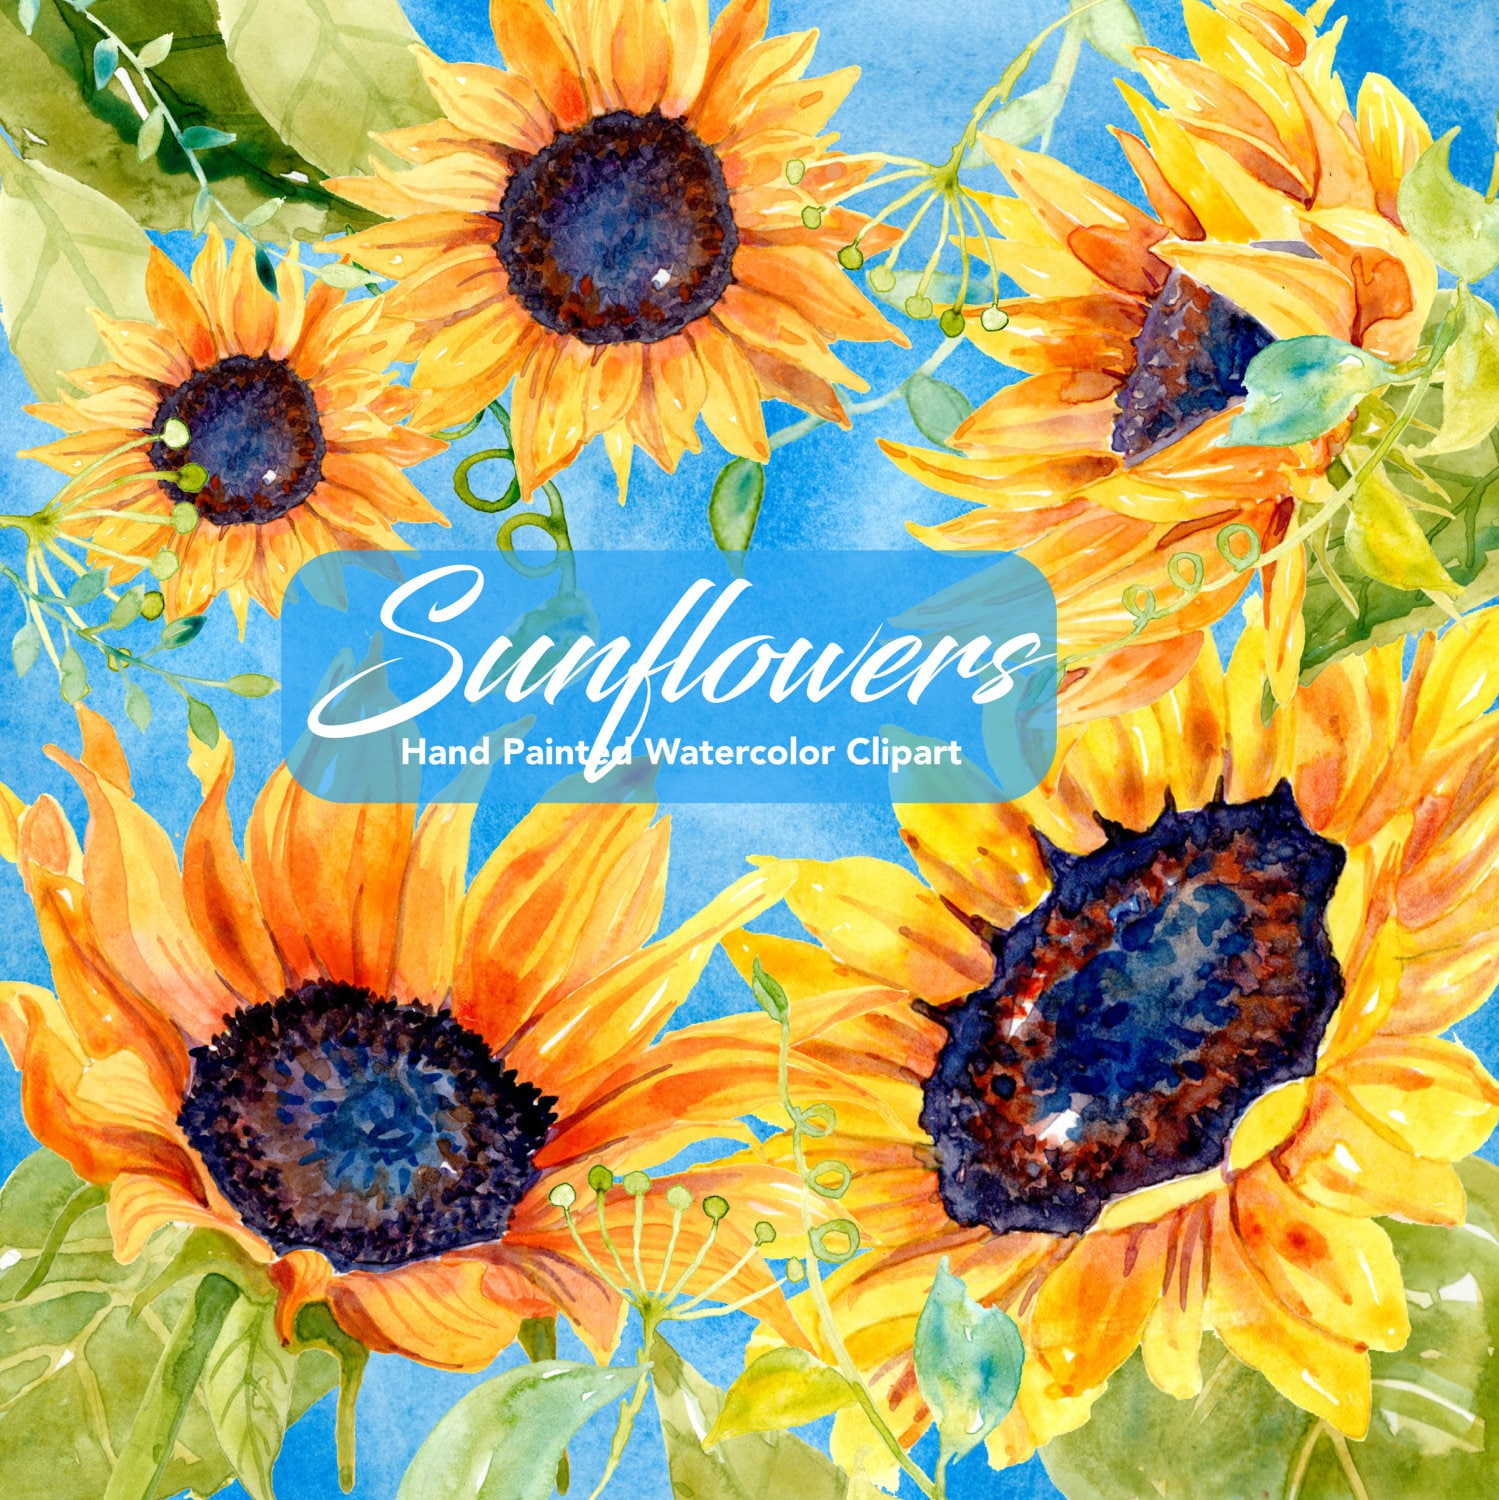 Sunflower Watercolor Clipart | Sunflowers Clipart ...